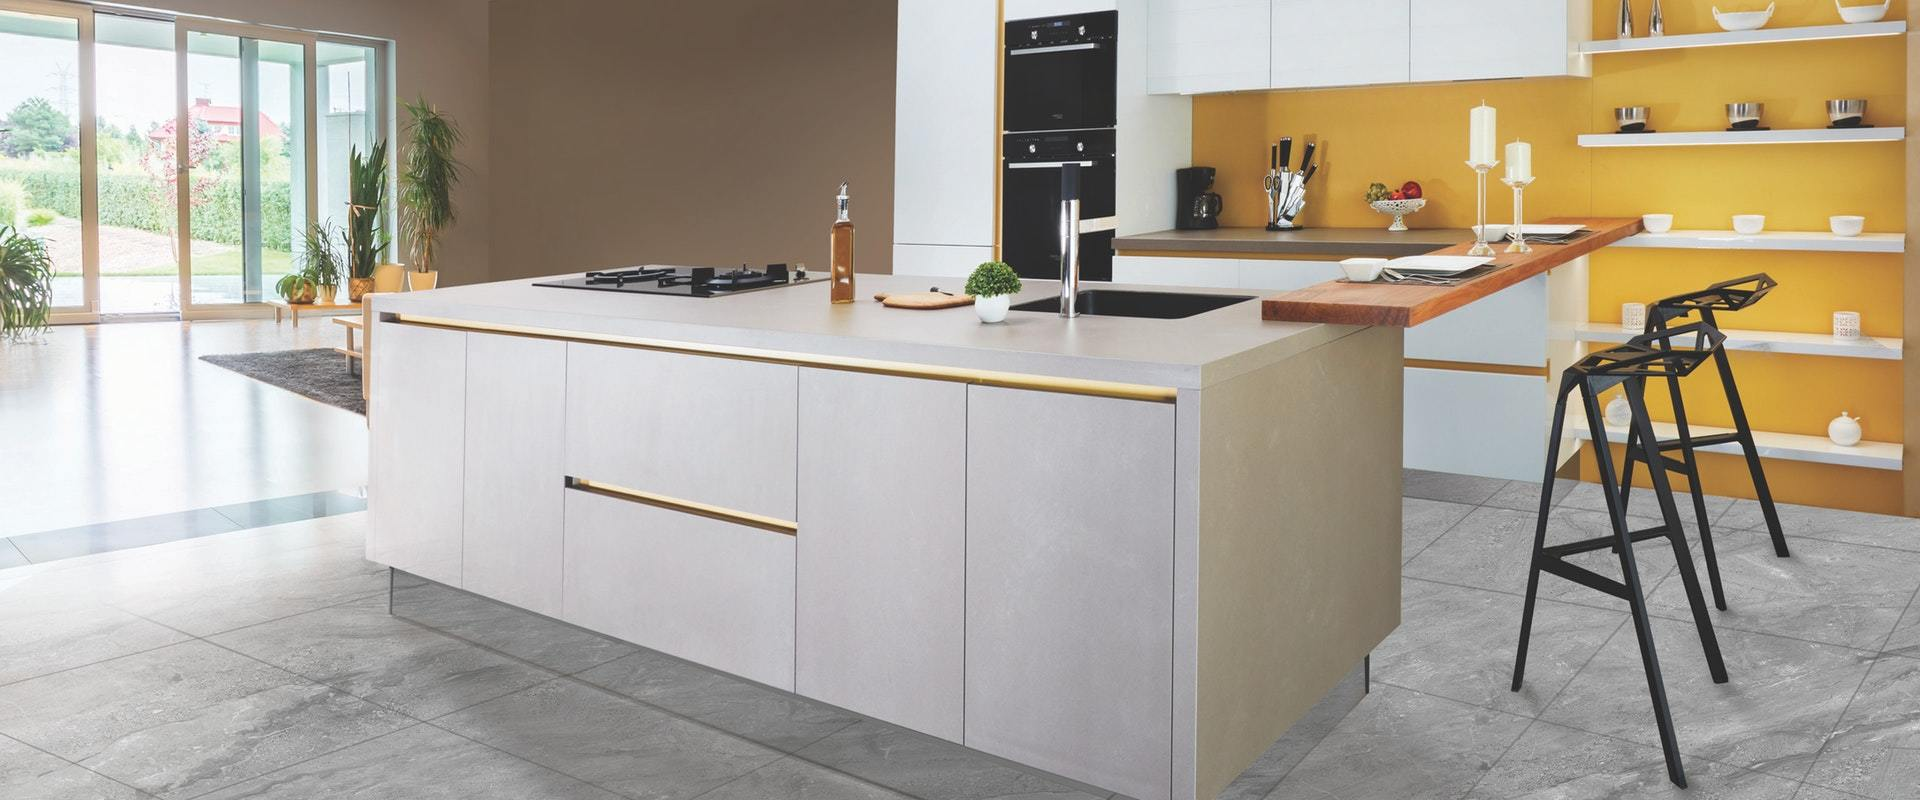 Cabinets contemporary counter 2089698 (1)